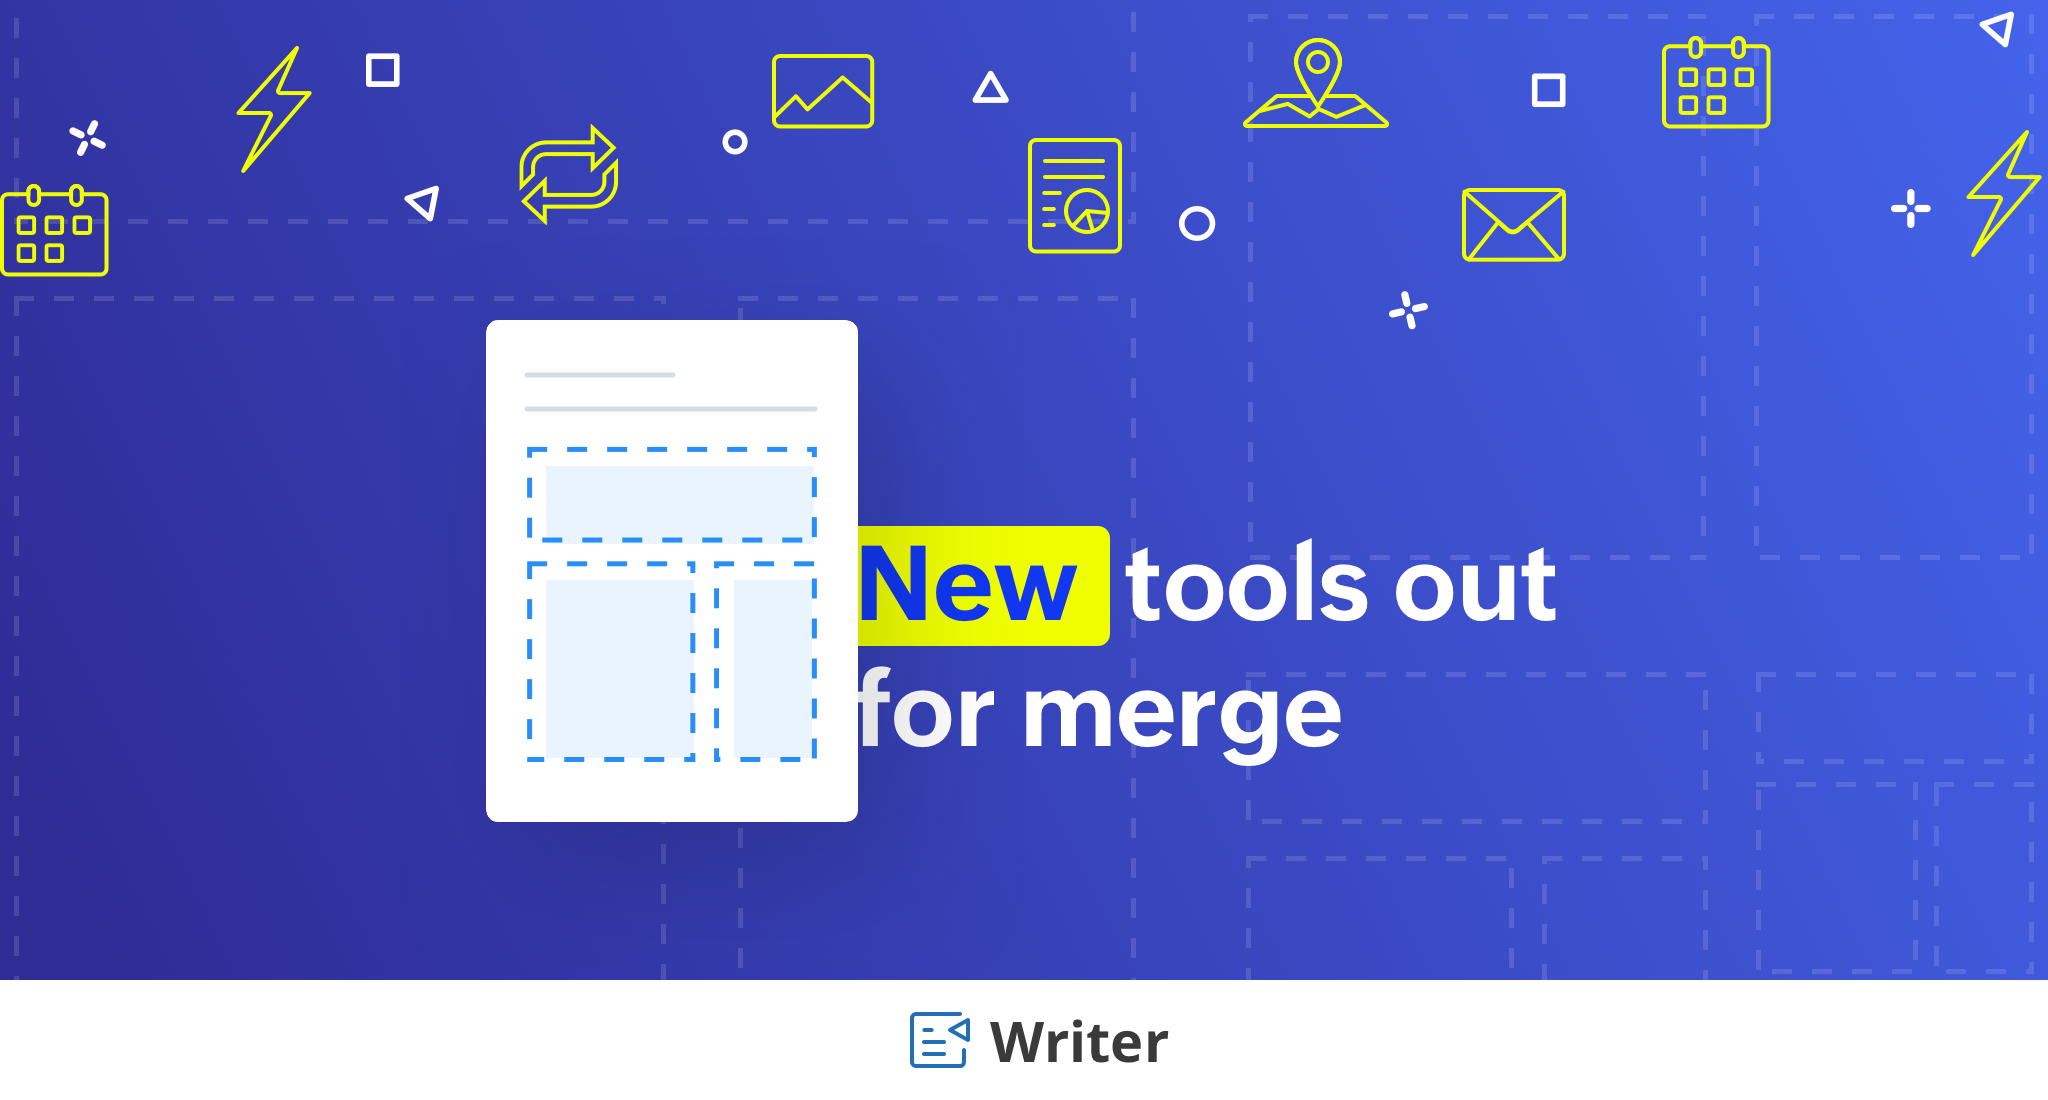 Introducing great new tools to power up your document merges ⚡️